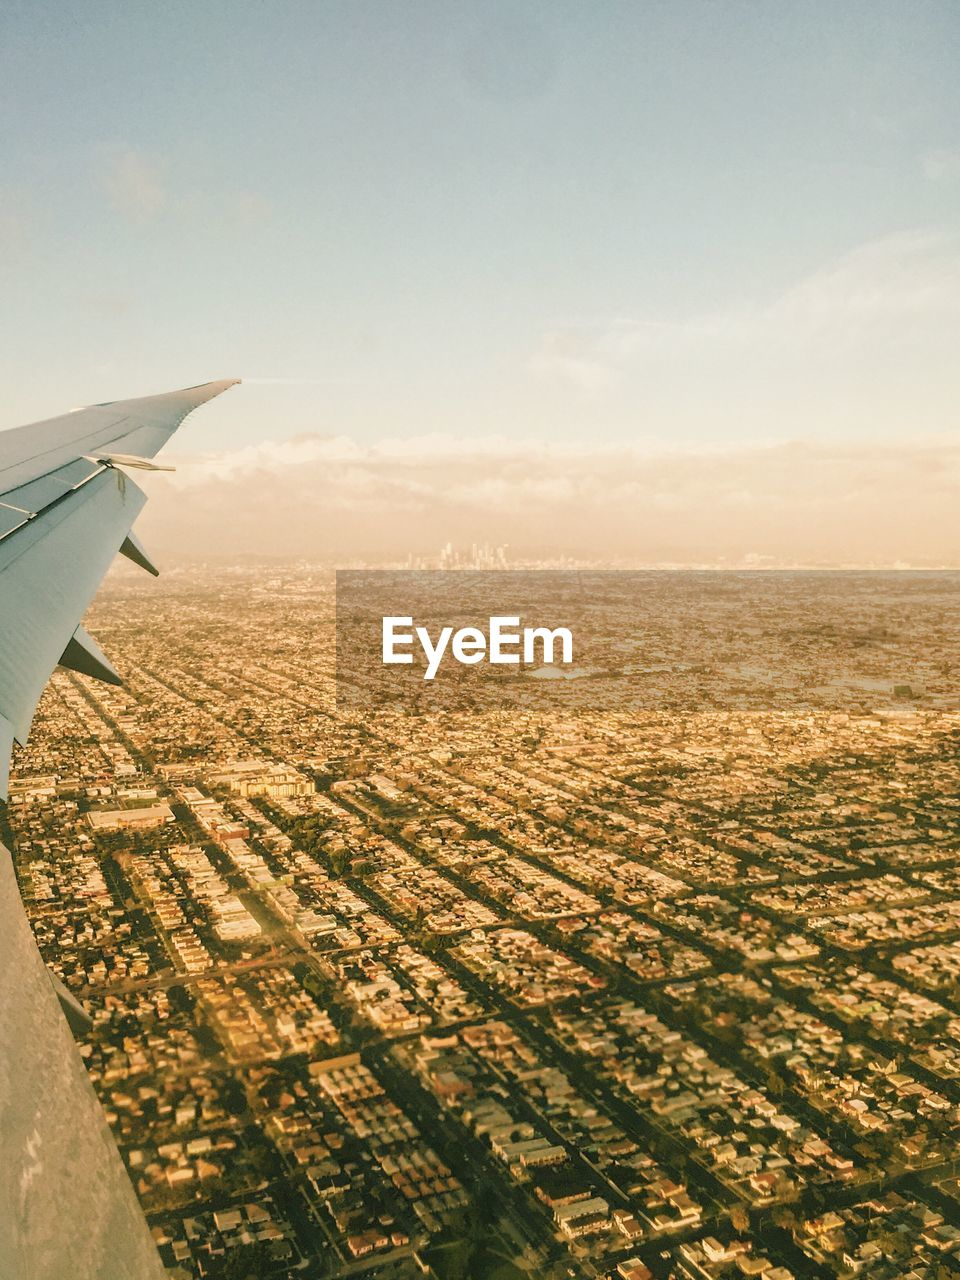 air vehicle, airplane, sky, transportation, mode of transportation, flying, cloud - sky, aircraft wing, landscape, nature, travel, mid-air, beauty in nature, aerial view, environment, no people, scenics - nature, sunset, outdoors, journey, plane